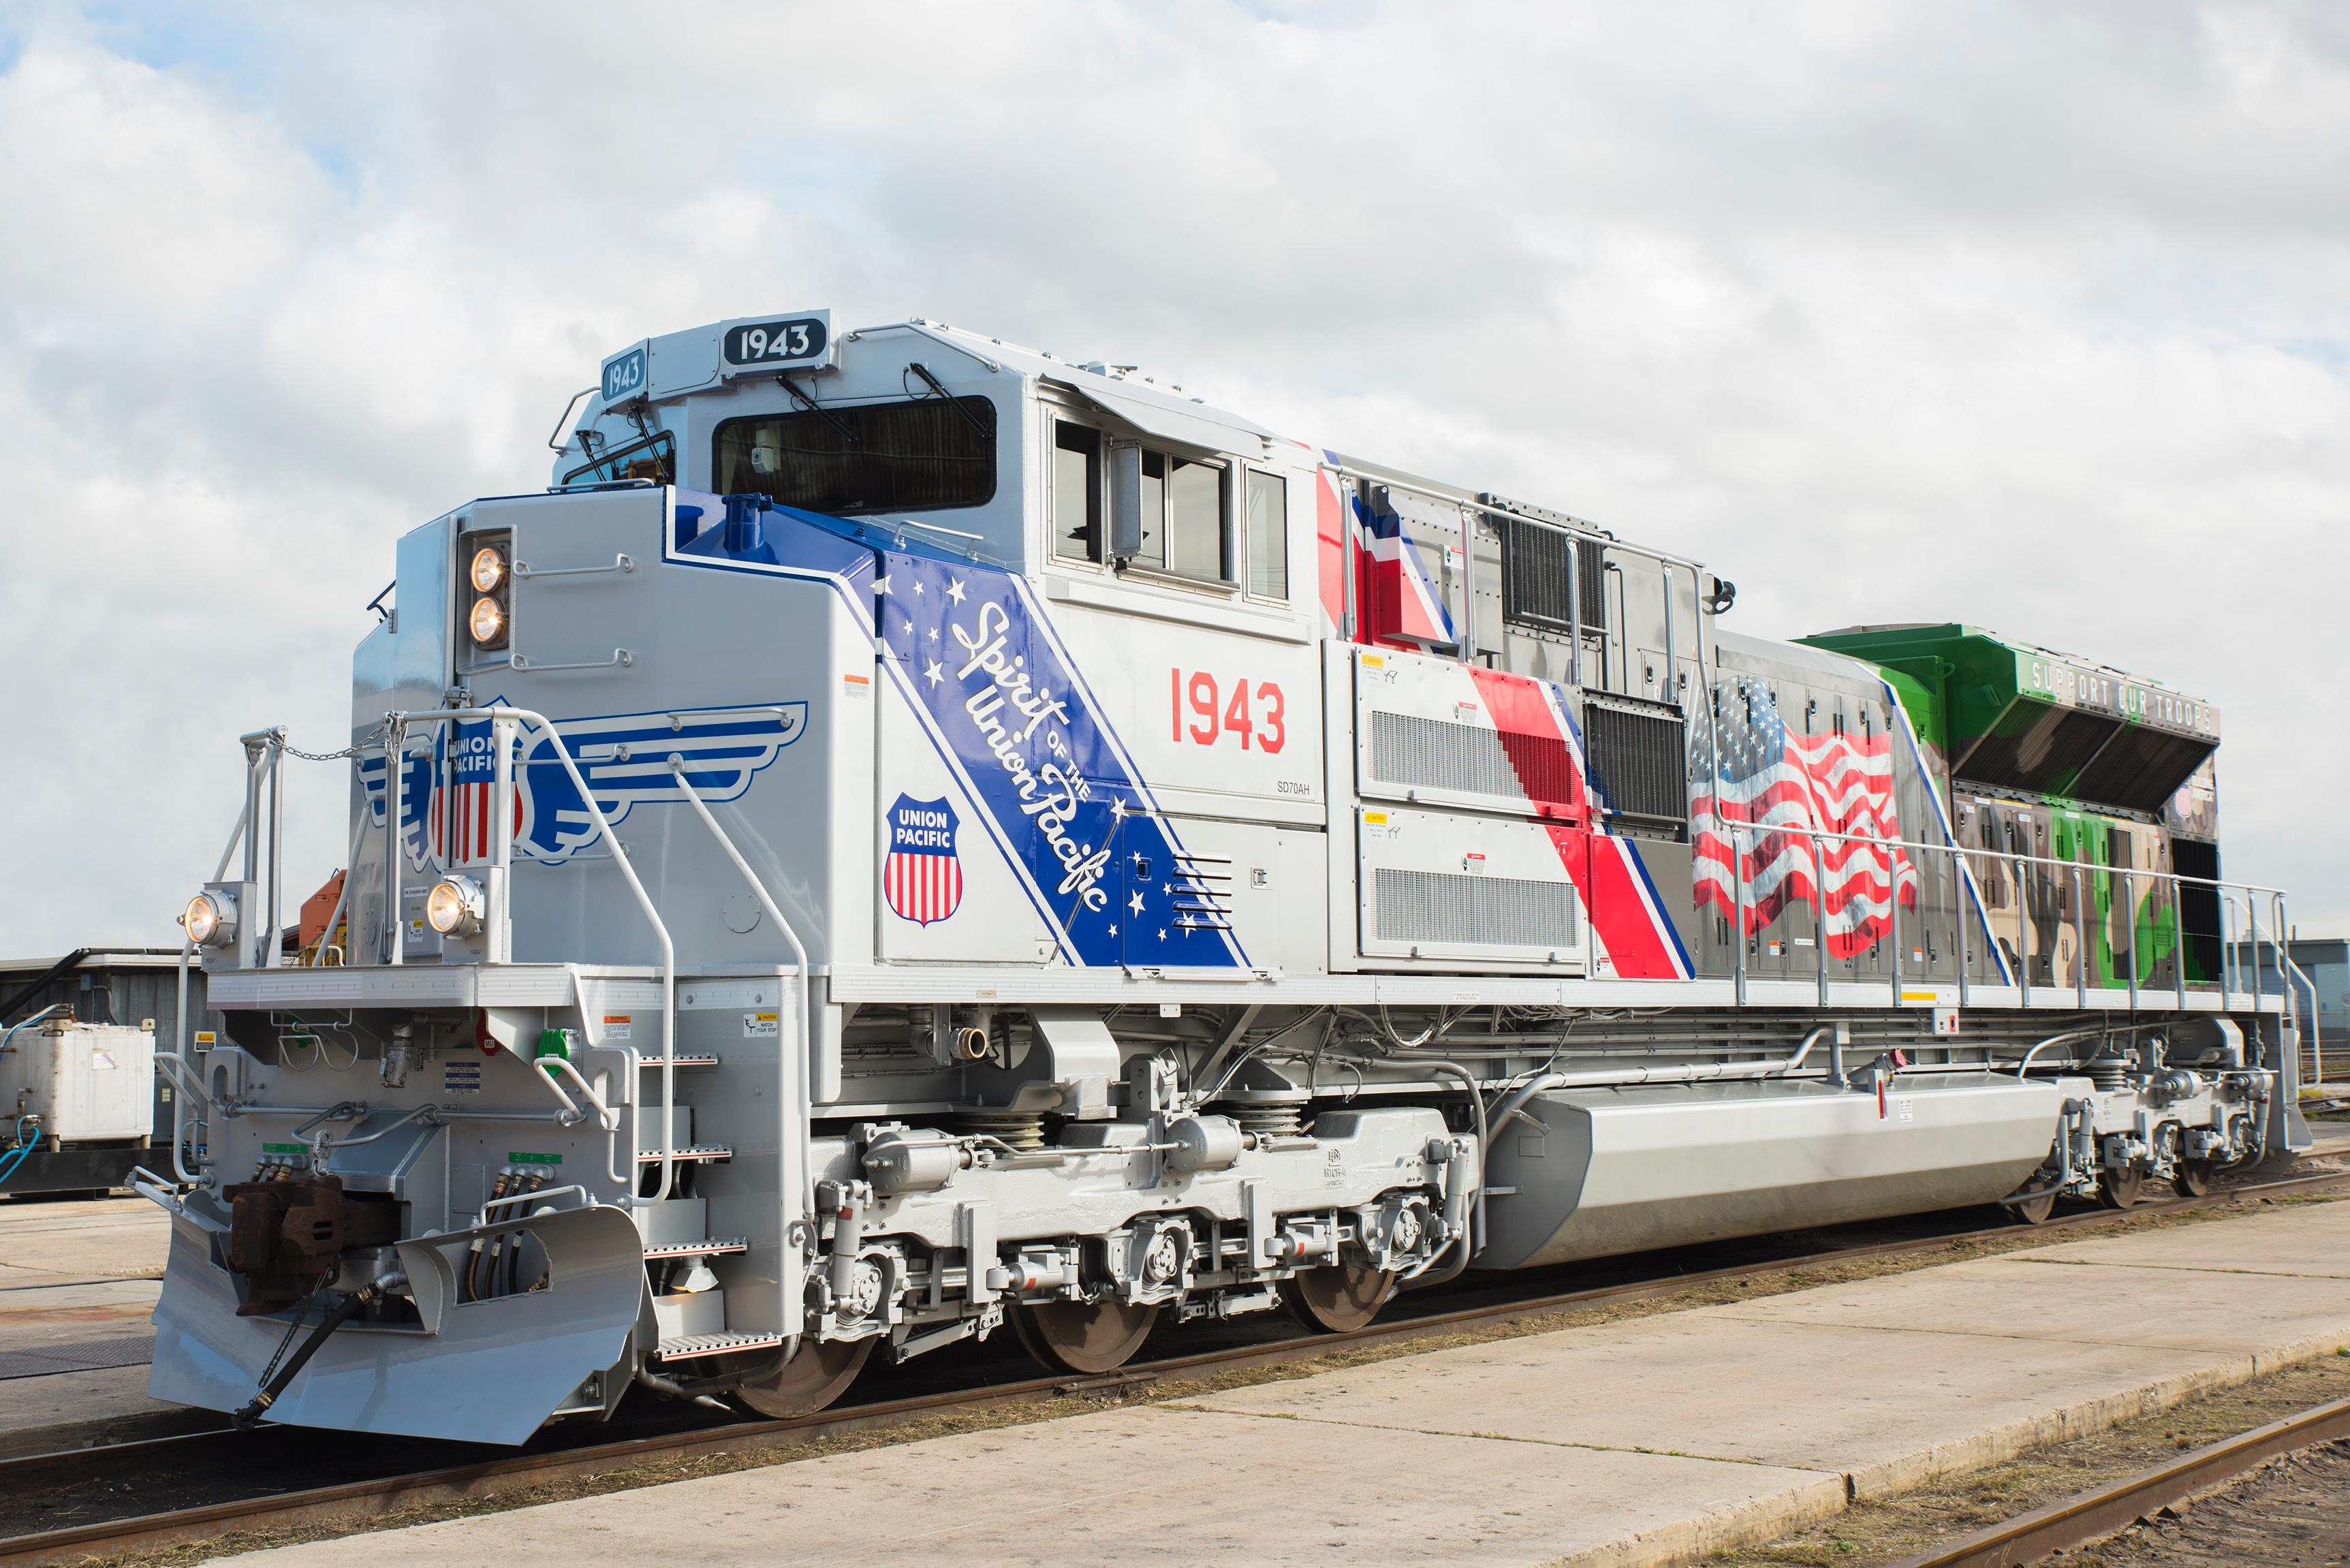 Up locomotive honors remembers those who served locomotive no 1943 the spirit in san antonio texas shortly after it was unveiled for the first time the design of union pacifics biocorpaavc